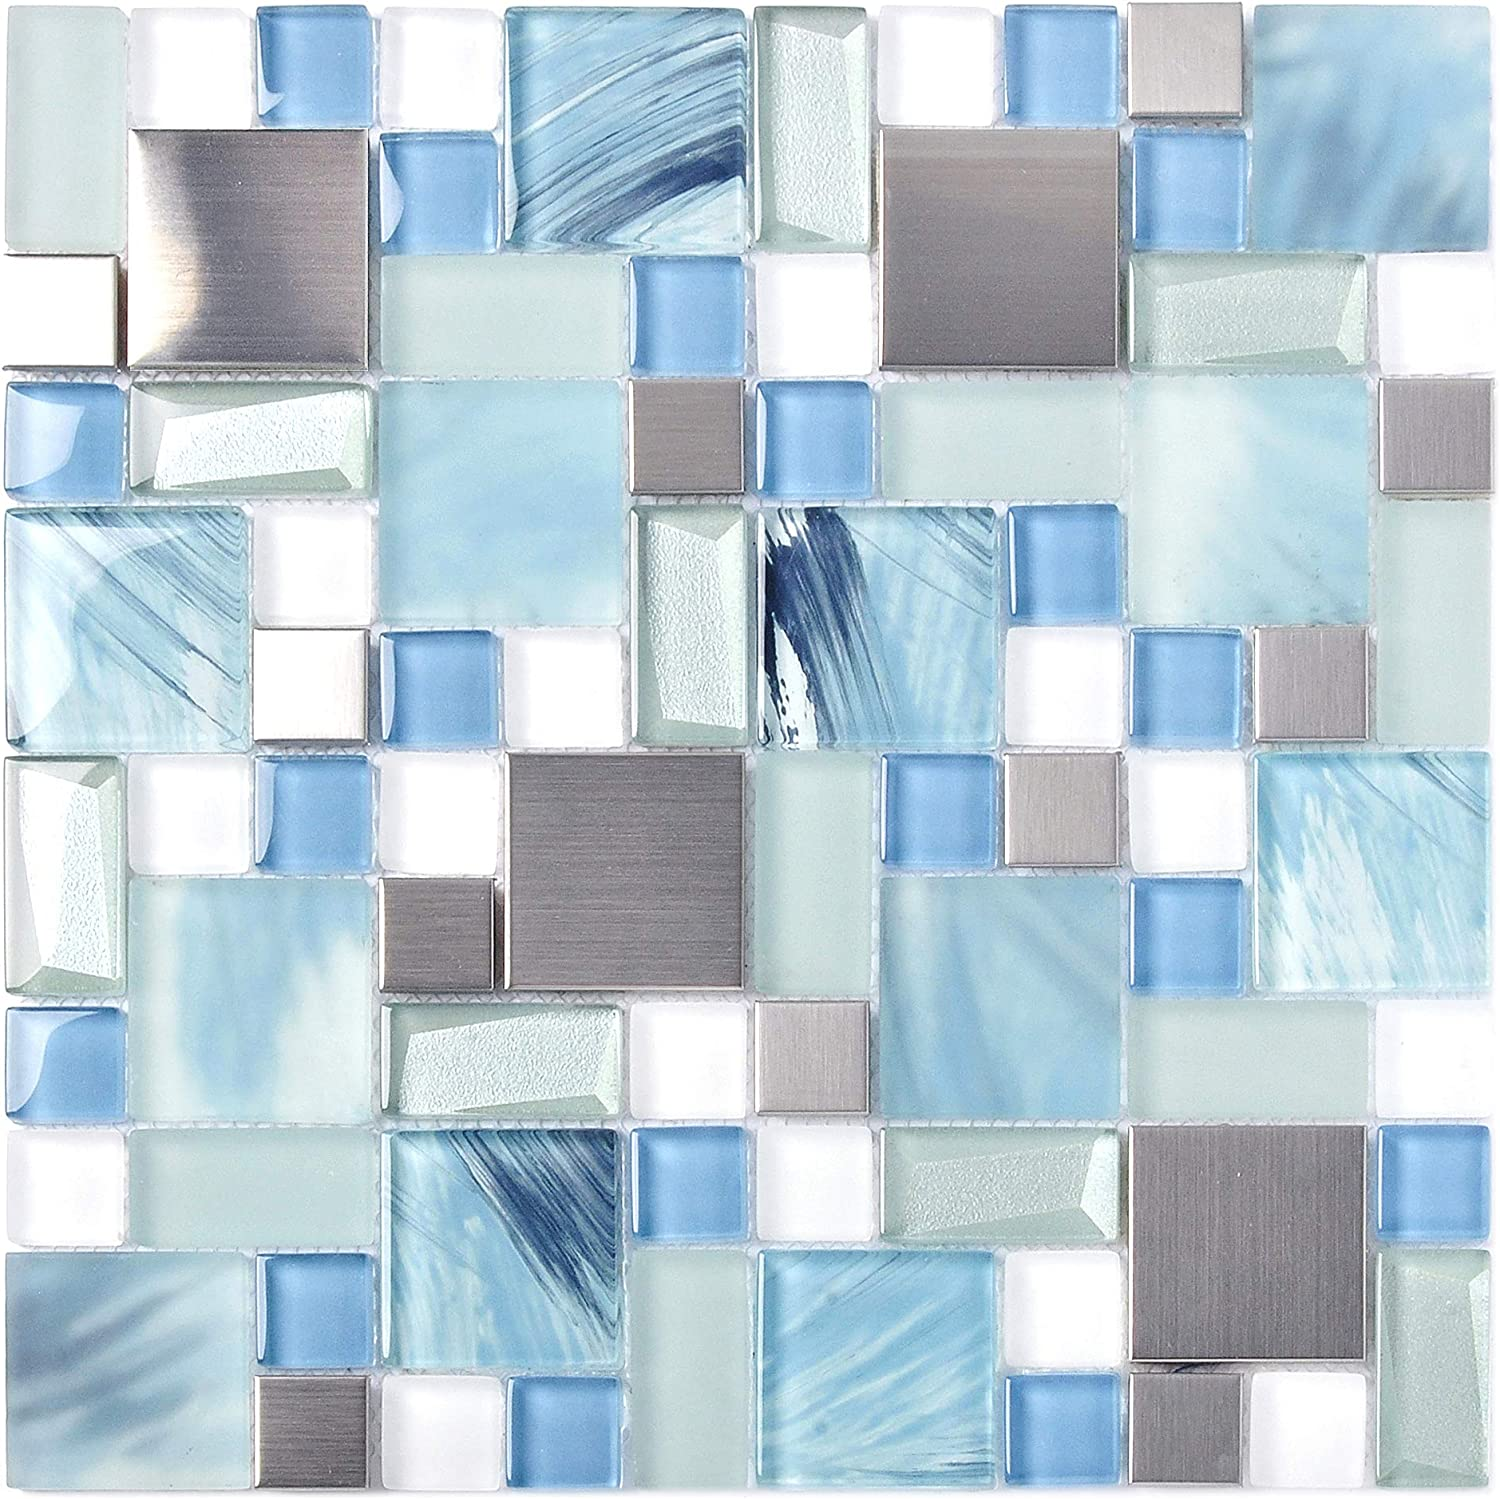 - Sea Blue Green Glass Stainless Steel Tile White Kitchen Bath Backsplash  Artistic Mosaic TSTMGB028 (1 Sample 12x12 Inches) - - Amazon.com